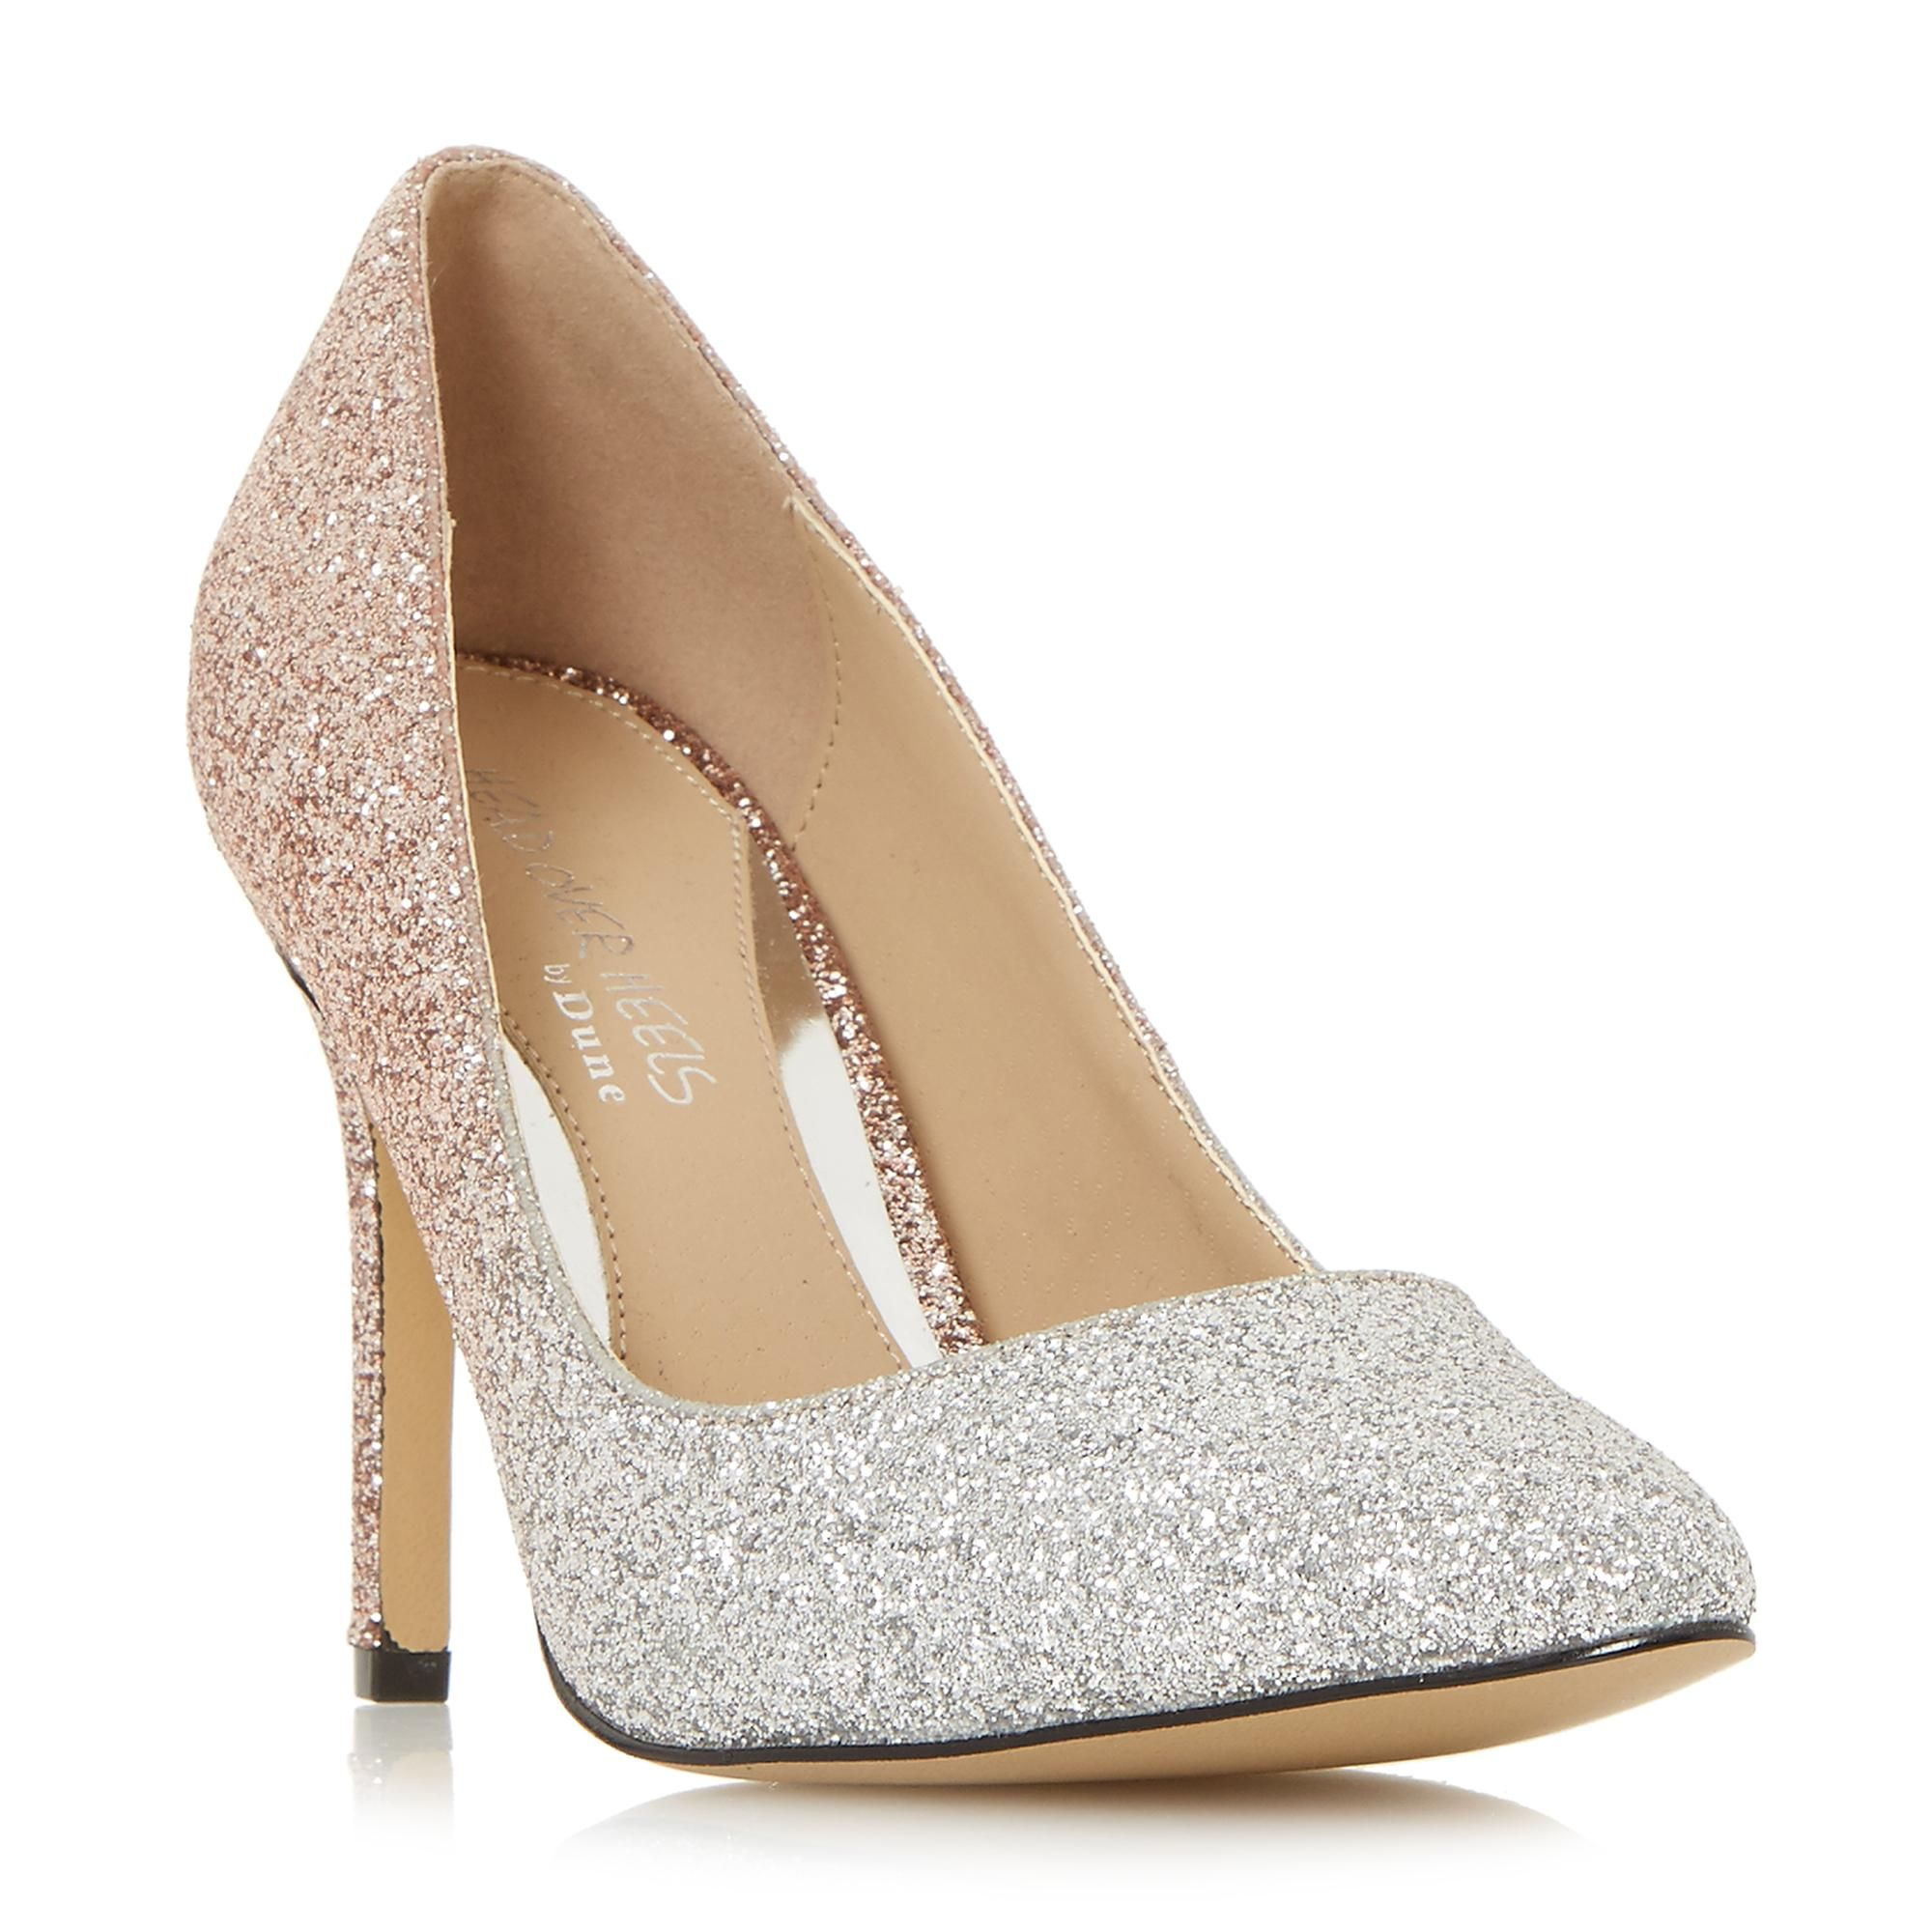 AVANDRA Ombre Glitter Court Shoe rose gold | Dune London